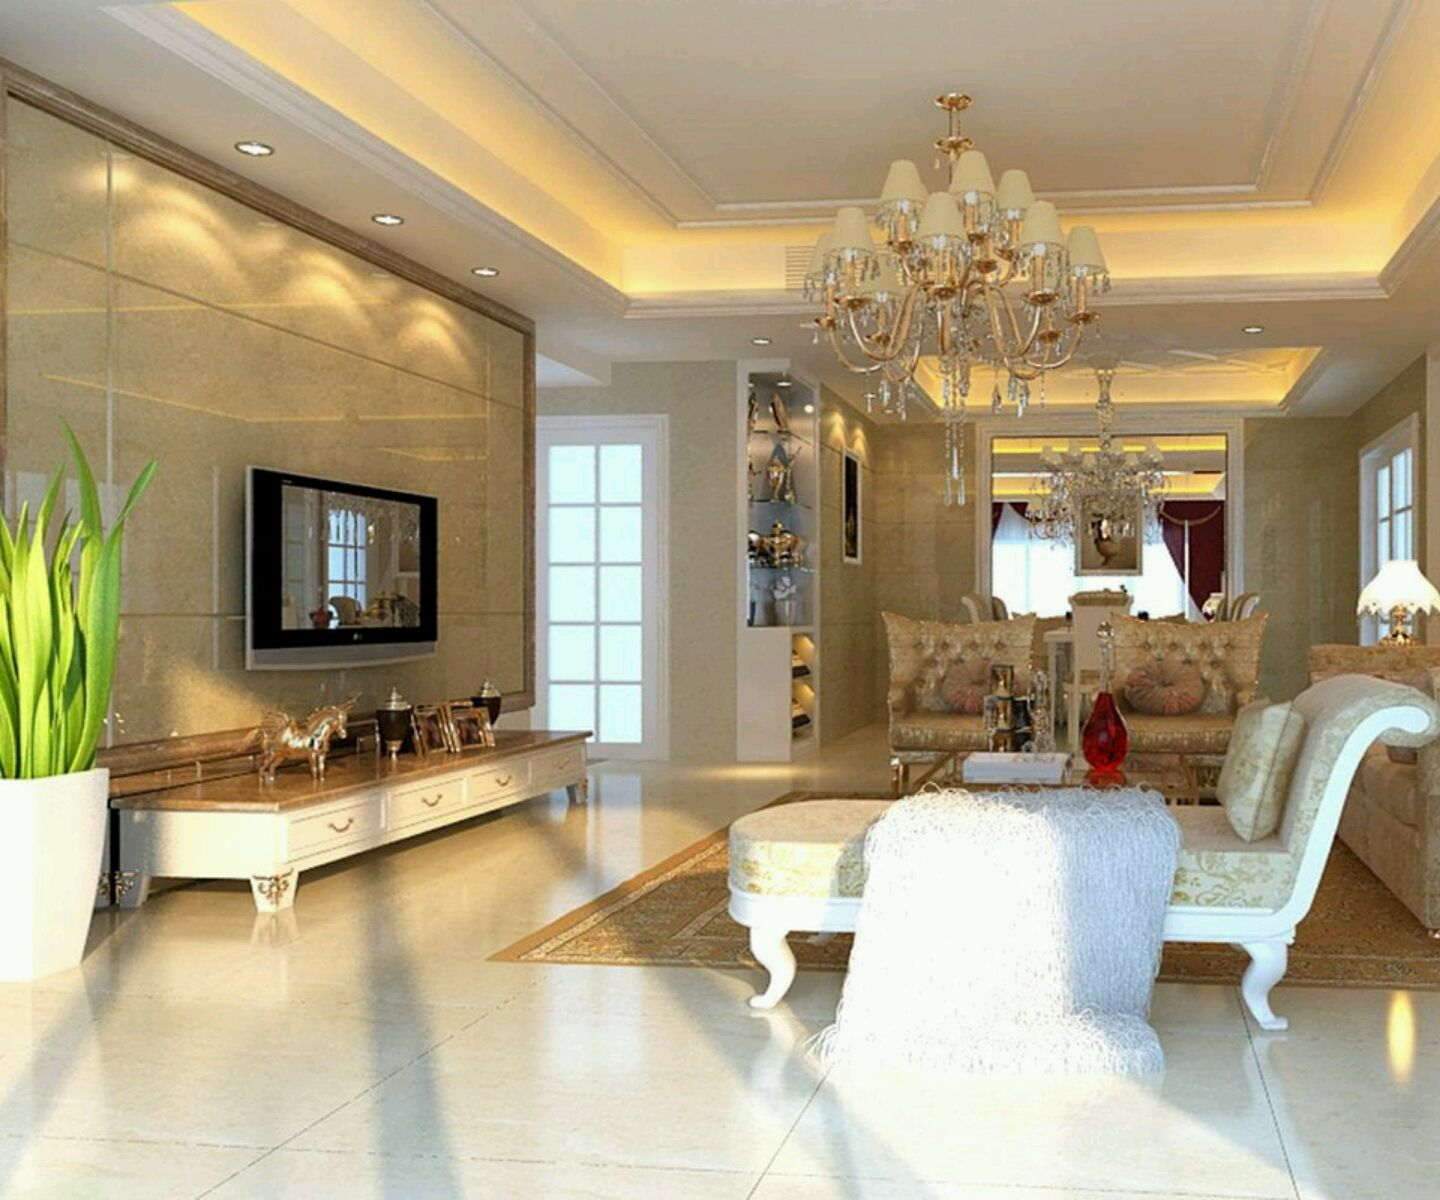 luxury homes interior decoration living room designs ideas - Luxury Home Design